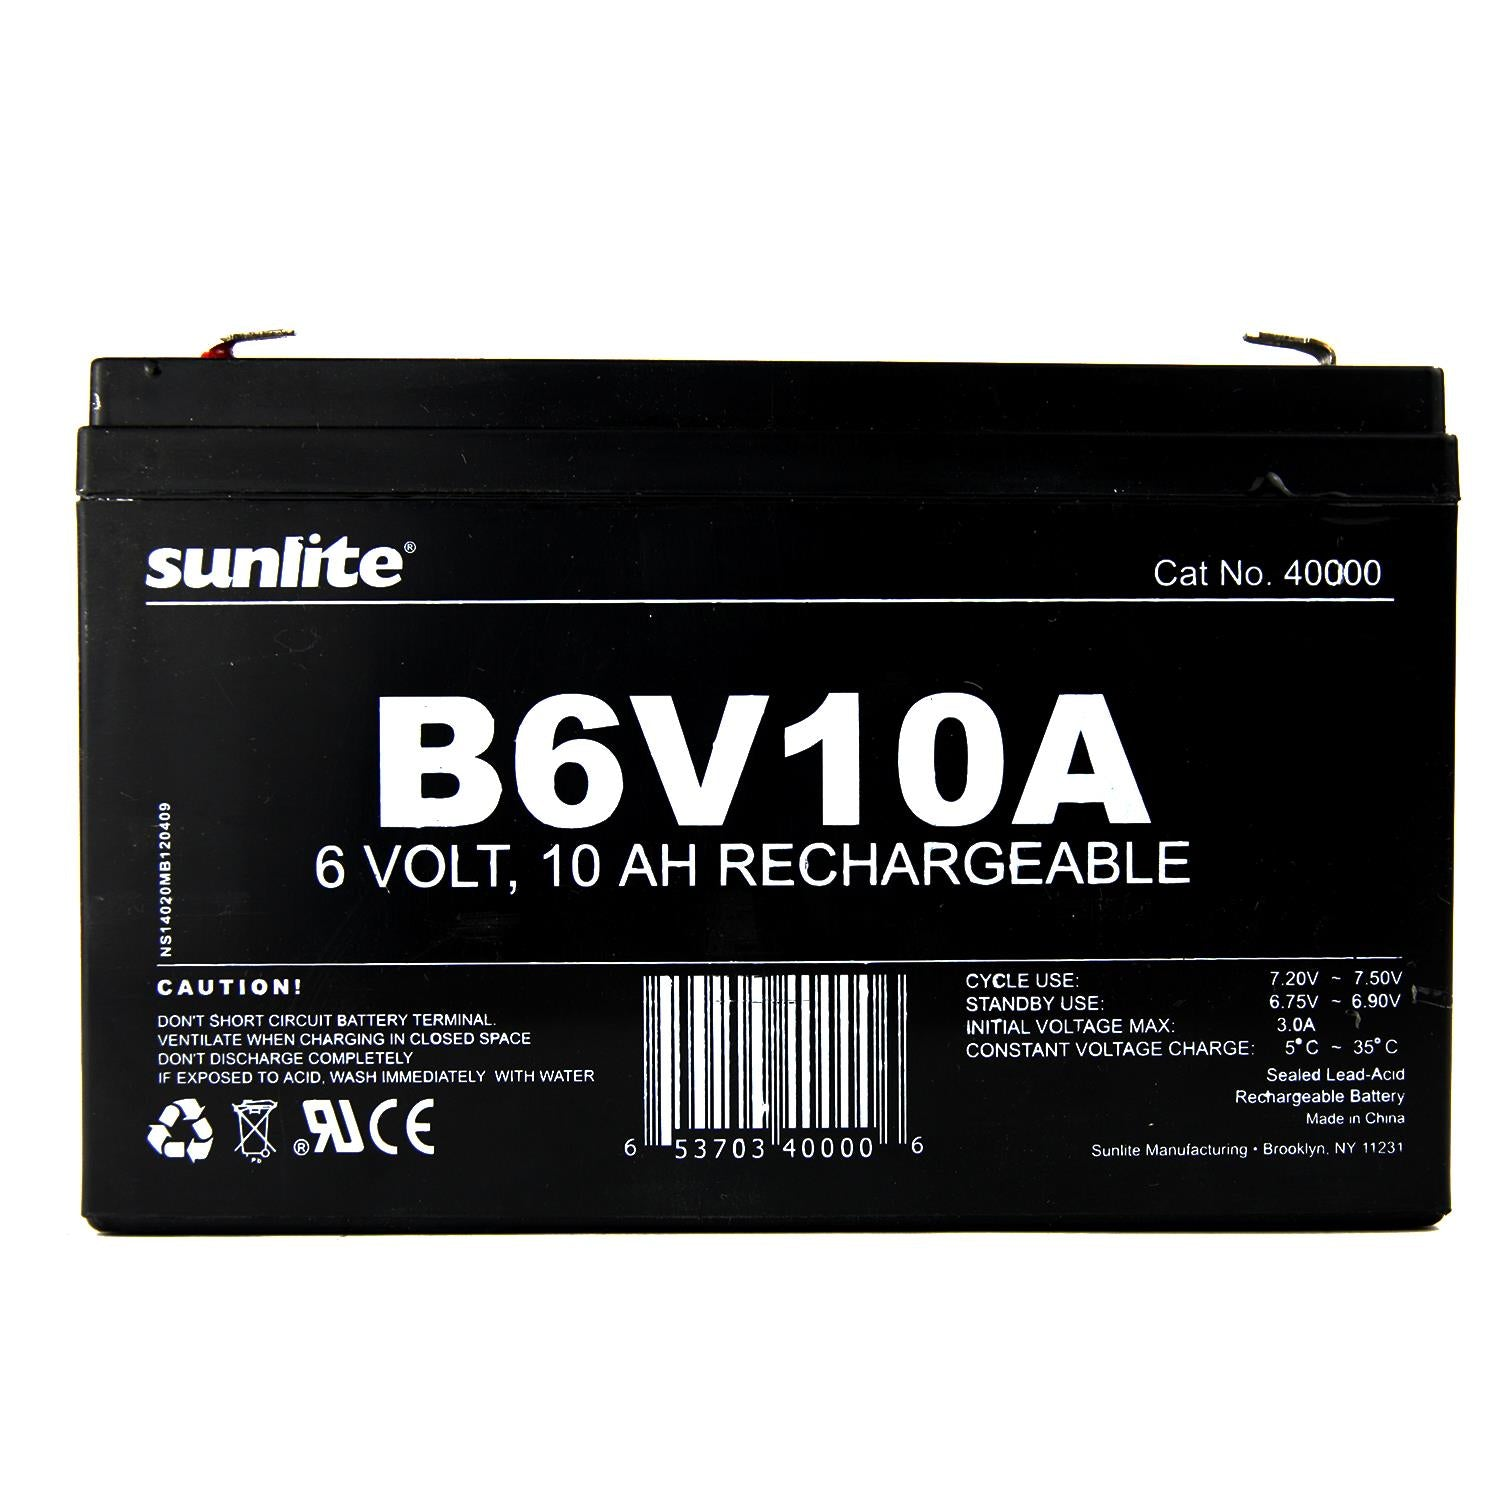 SUNLITE 6V 10A Emergency Back-Up Battery